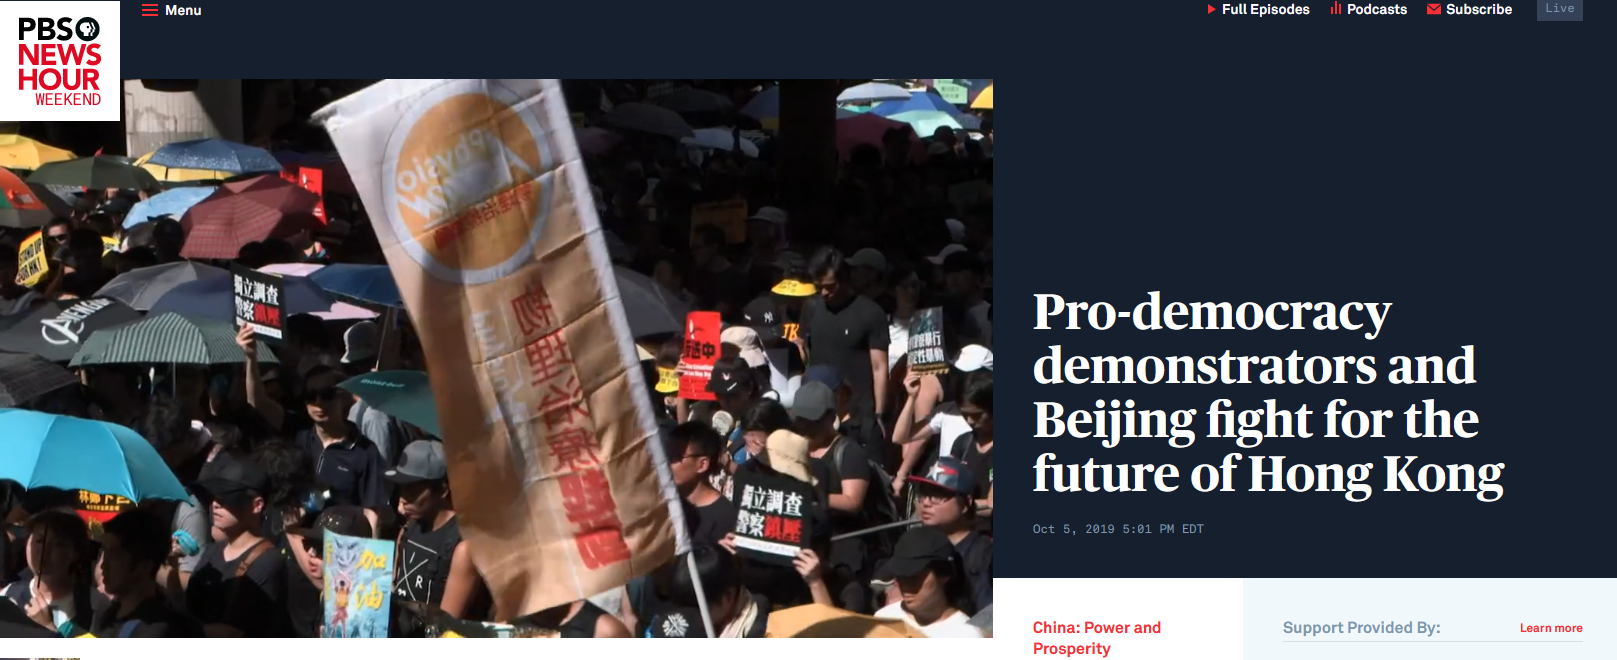 NewsHour: Pro-democracy demonstrators and Beijing fight for the future of Hong Kong